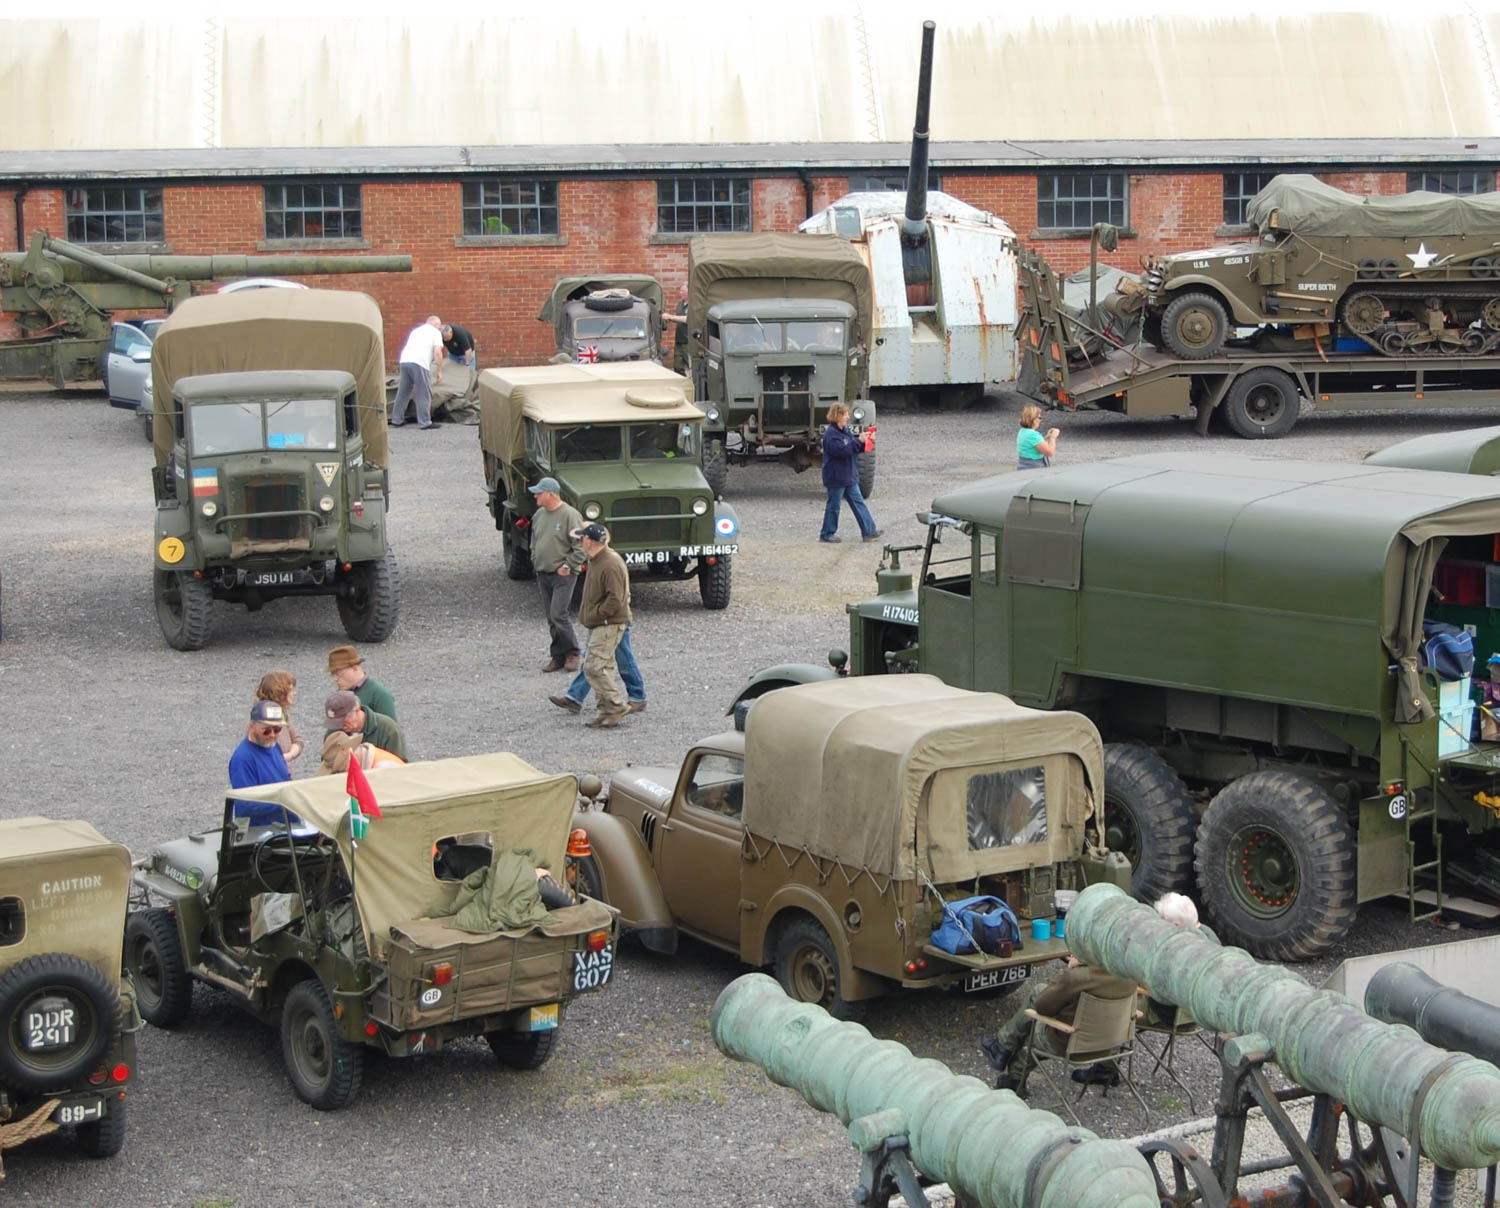 an assortment of Bedford trucks, Austin Tillys, and American jeeps gather at Fort Nelson near Portsmouth.